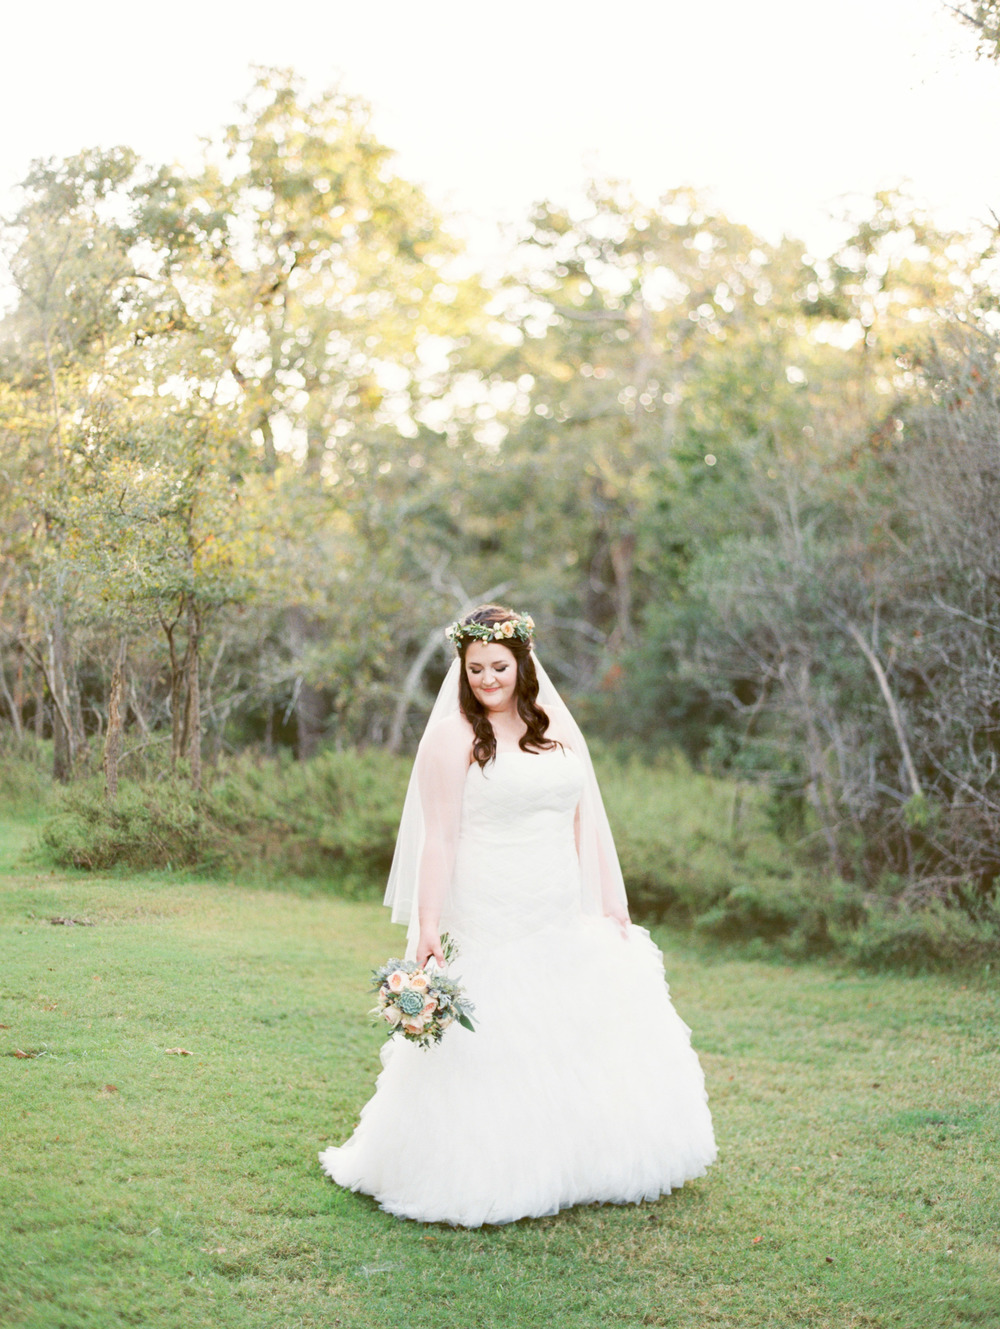 Sarah Best Photography - Elizabeth's Bridals - 7F Lodge-118.jpg